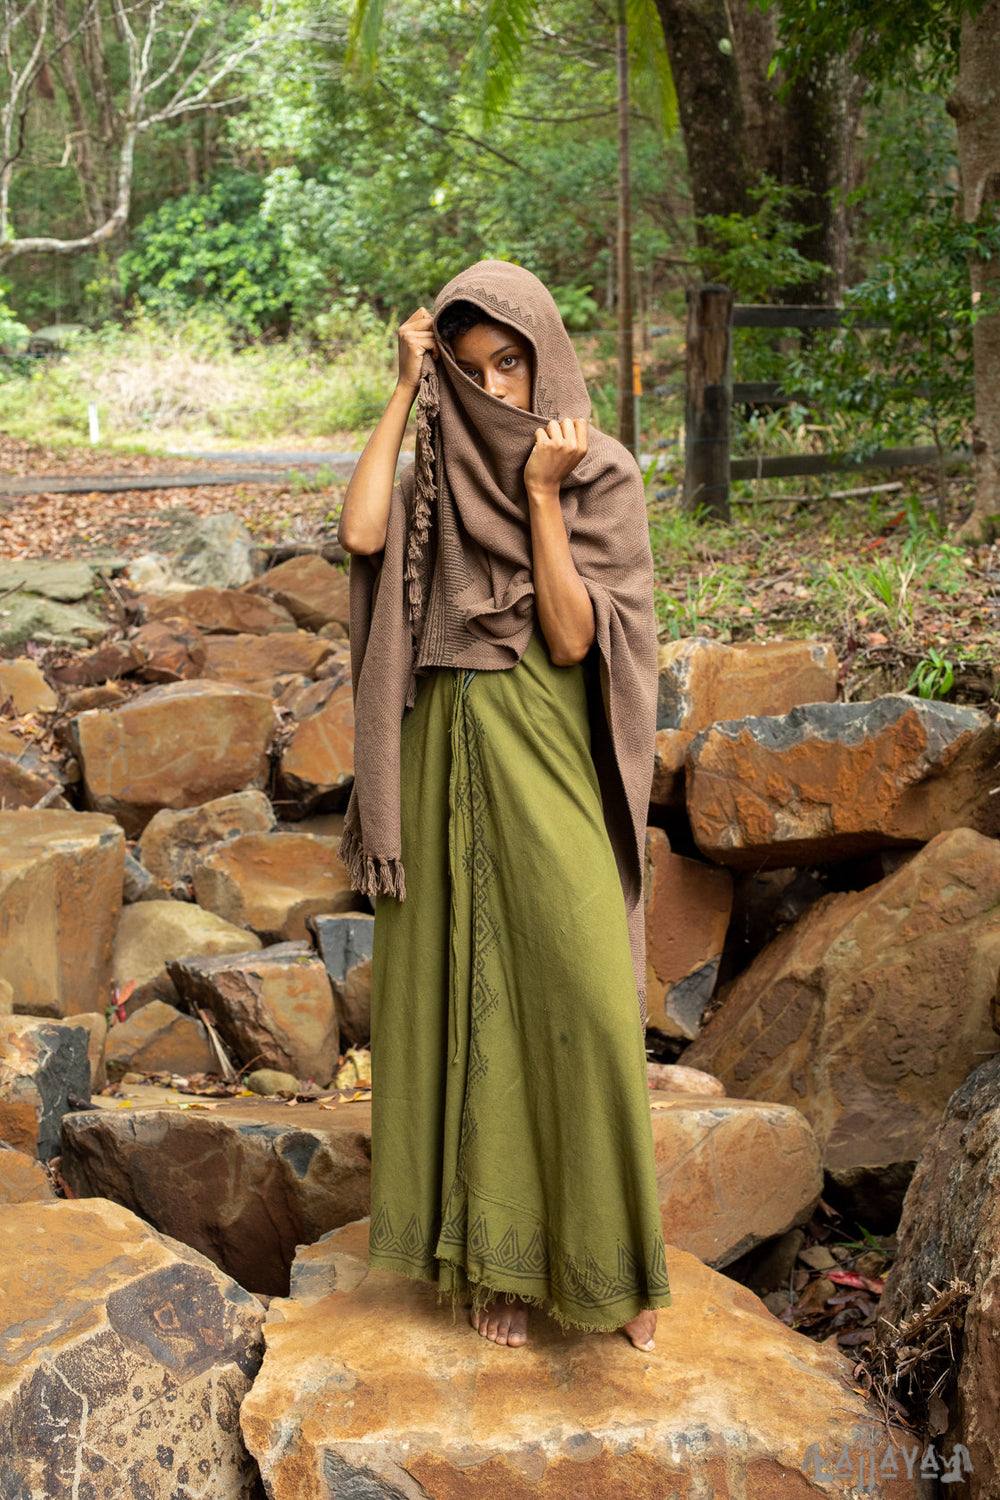 Brown ANAGAMI Hooded Kimono Cape Poncho Robe Block Printed Natural Dyed Ceremony Ritual Shaman Tribal Alchemy Sacred Shawl Wrap Rave AJJAYA